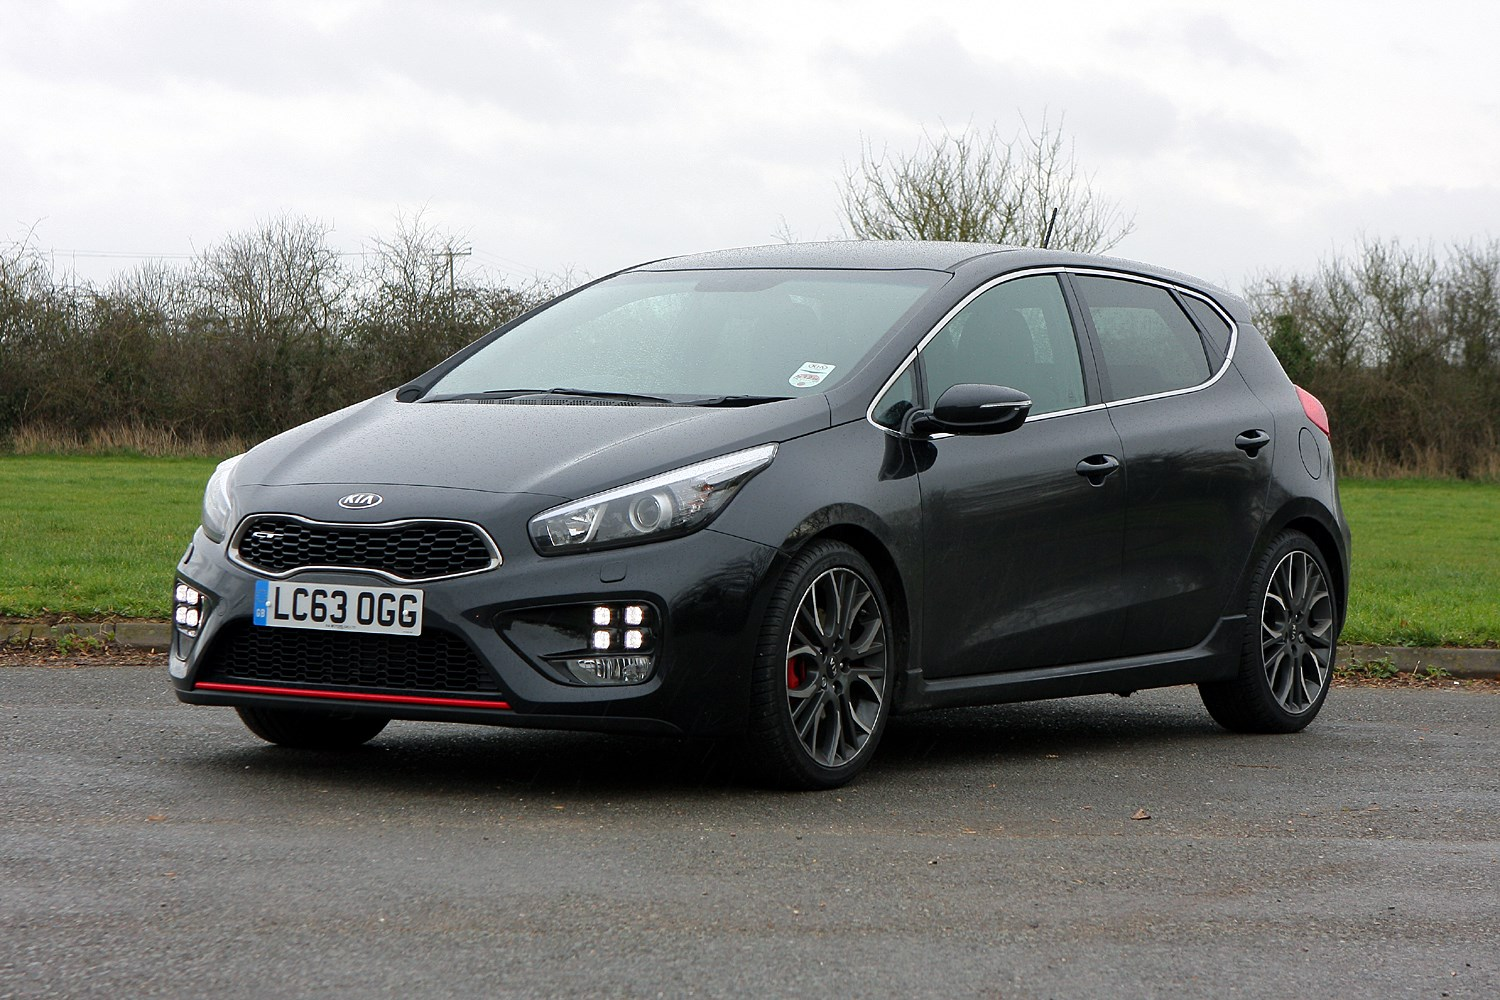 used kia ceed gt 2013 2018 review parkers. Black Bedroom Furniture Sets. Home Design Ideas